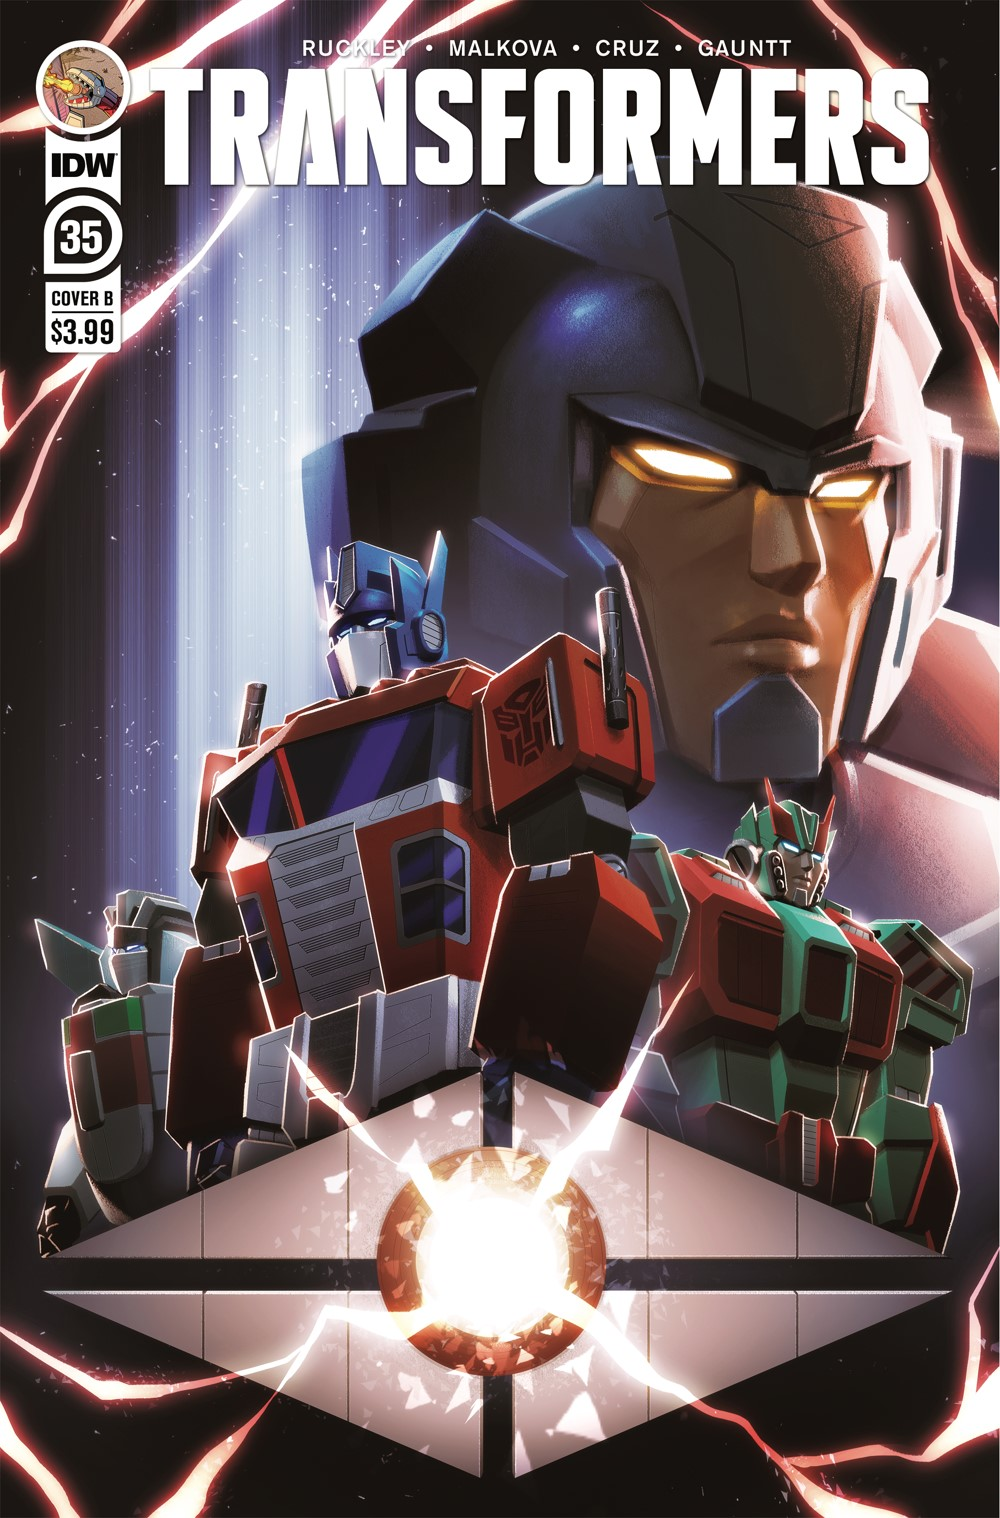 TF35-cvr-B ComicList: IDW Publishing New Releases for 09/22/2021